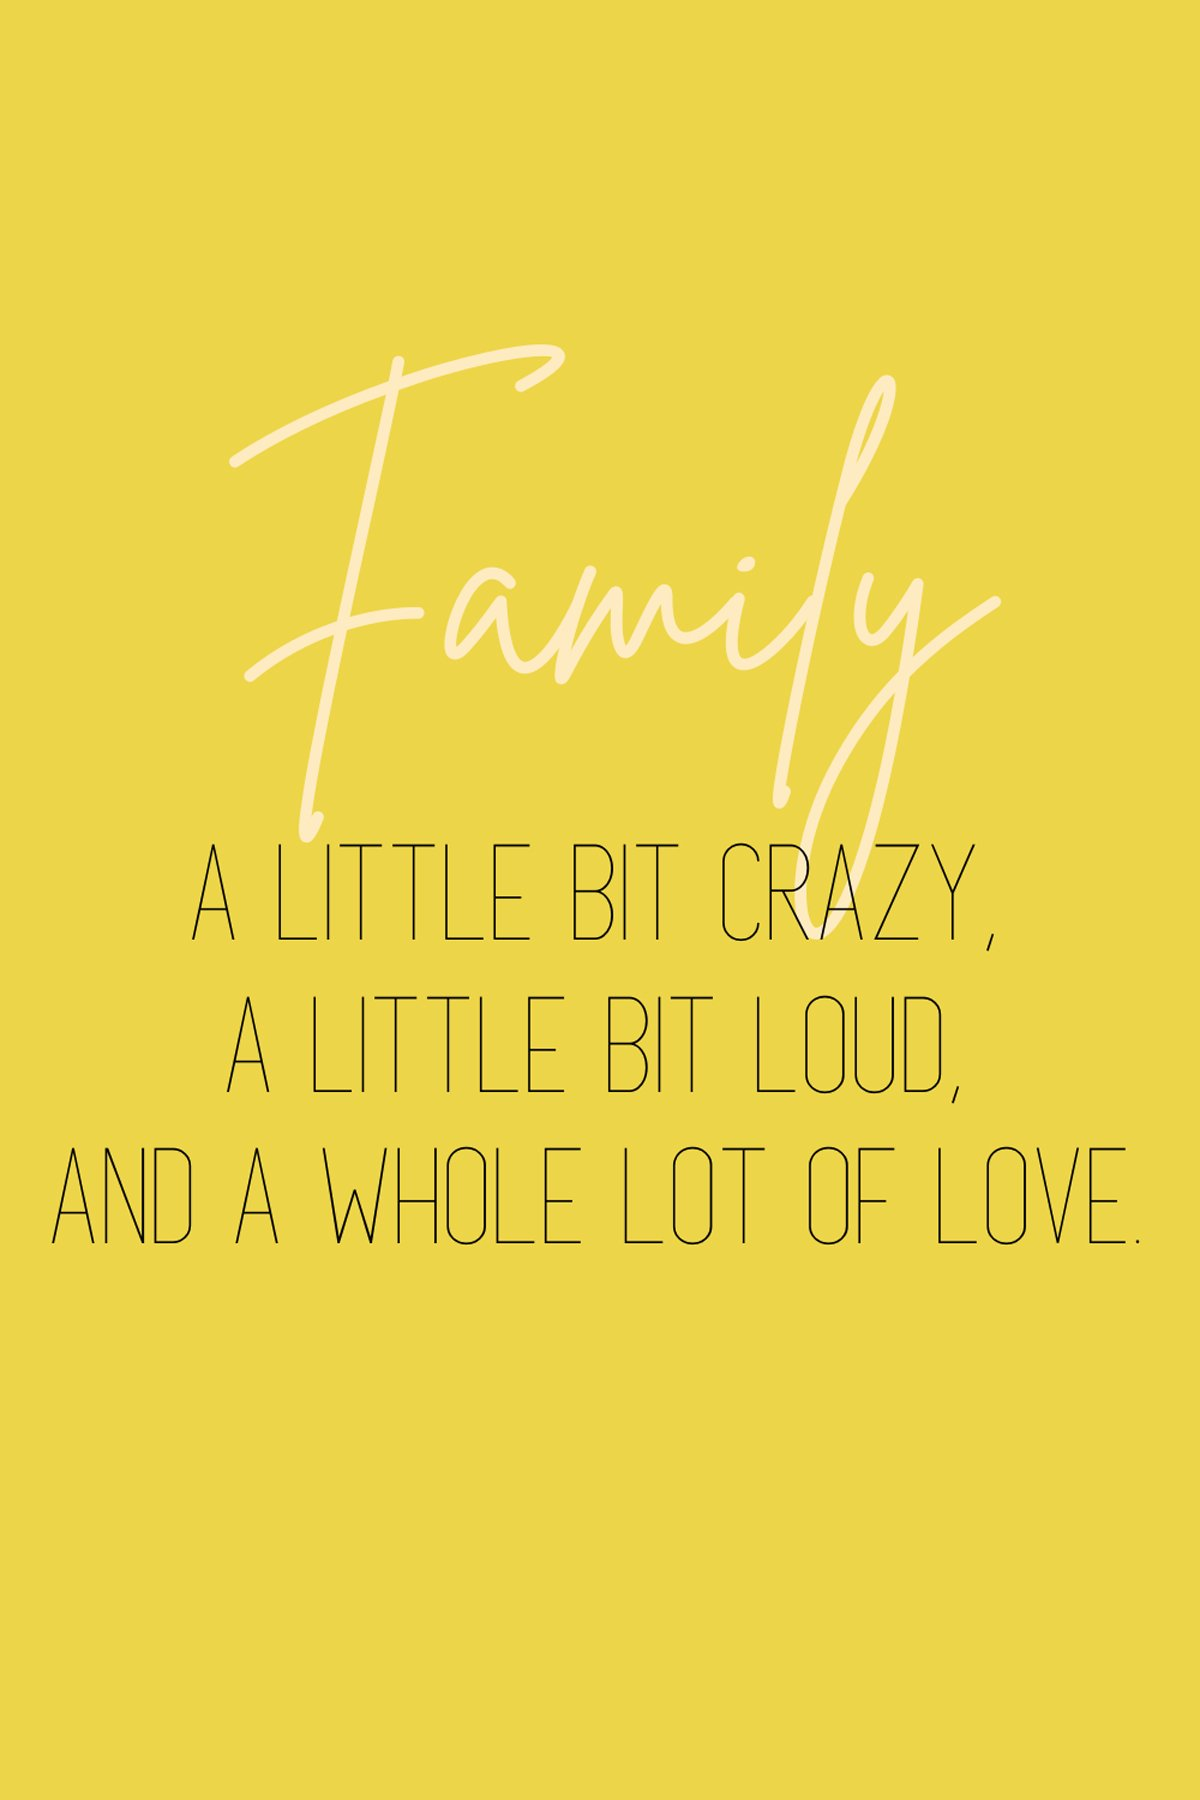 Humorous Quotes About Families